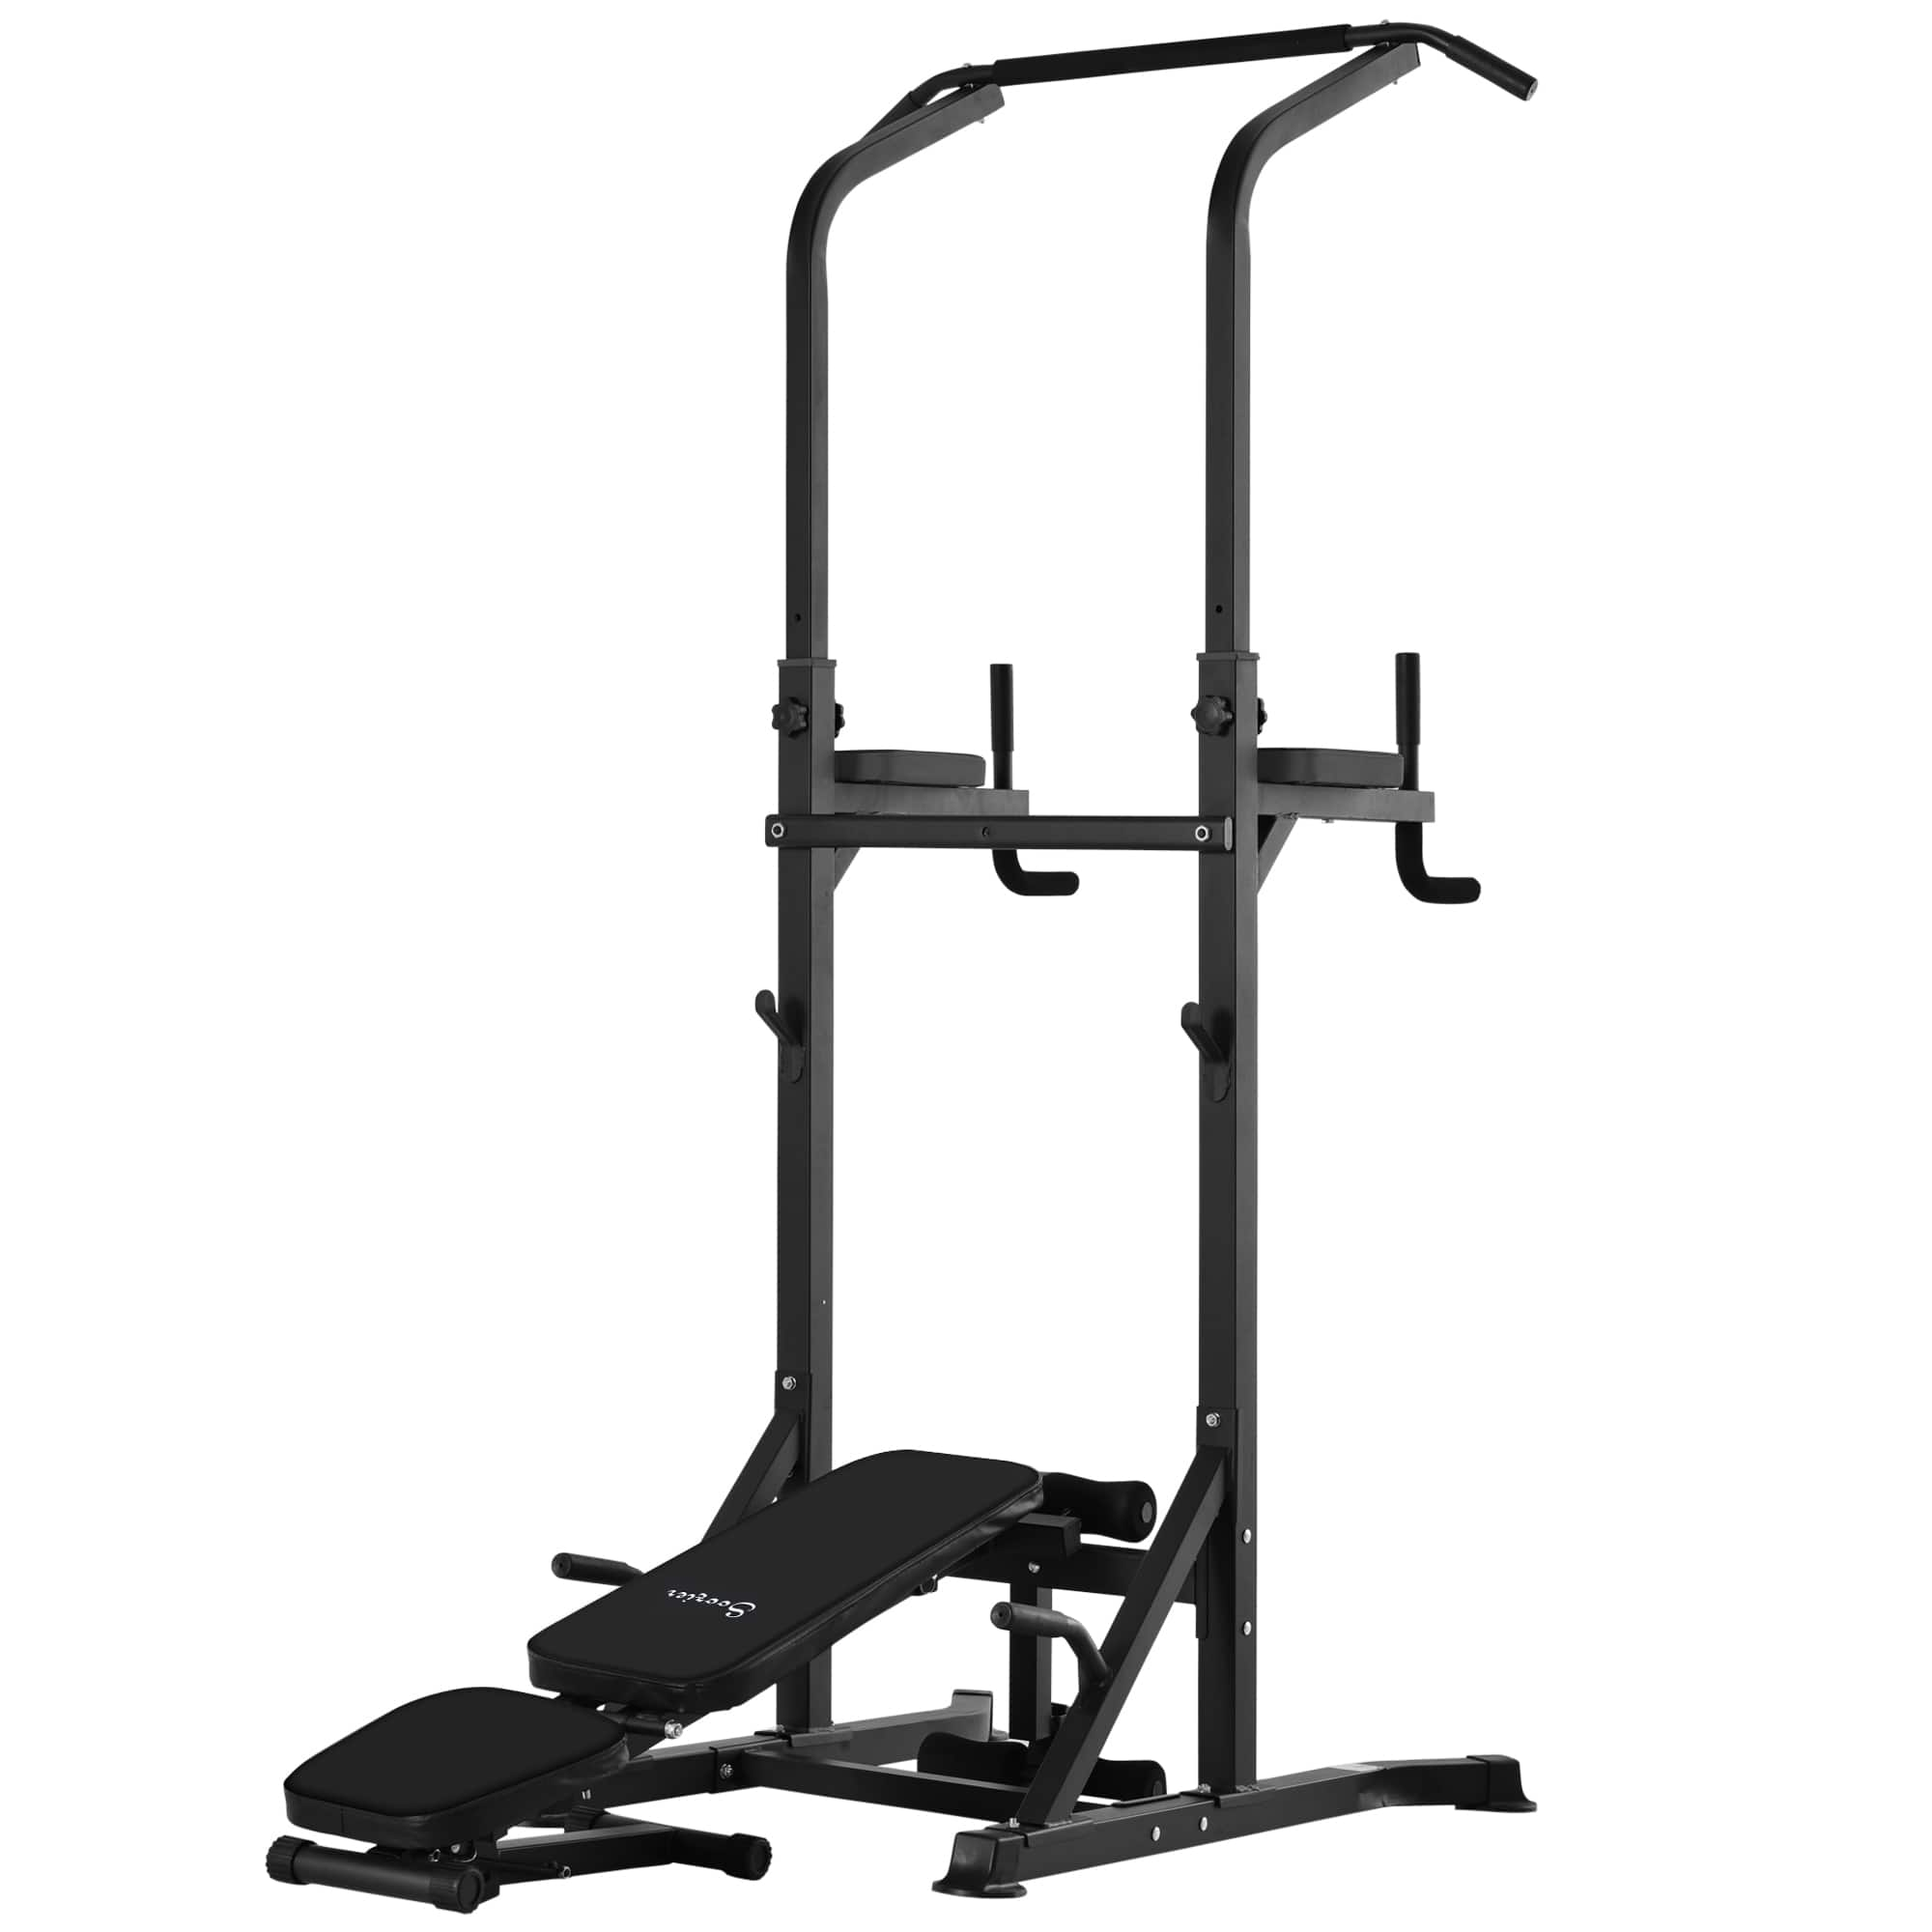 Adjustable & Folded Dip Stands Multi-Function Pull-ups Sit-ups, Fitness Tools Gym $89.99